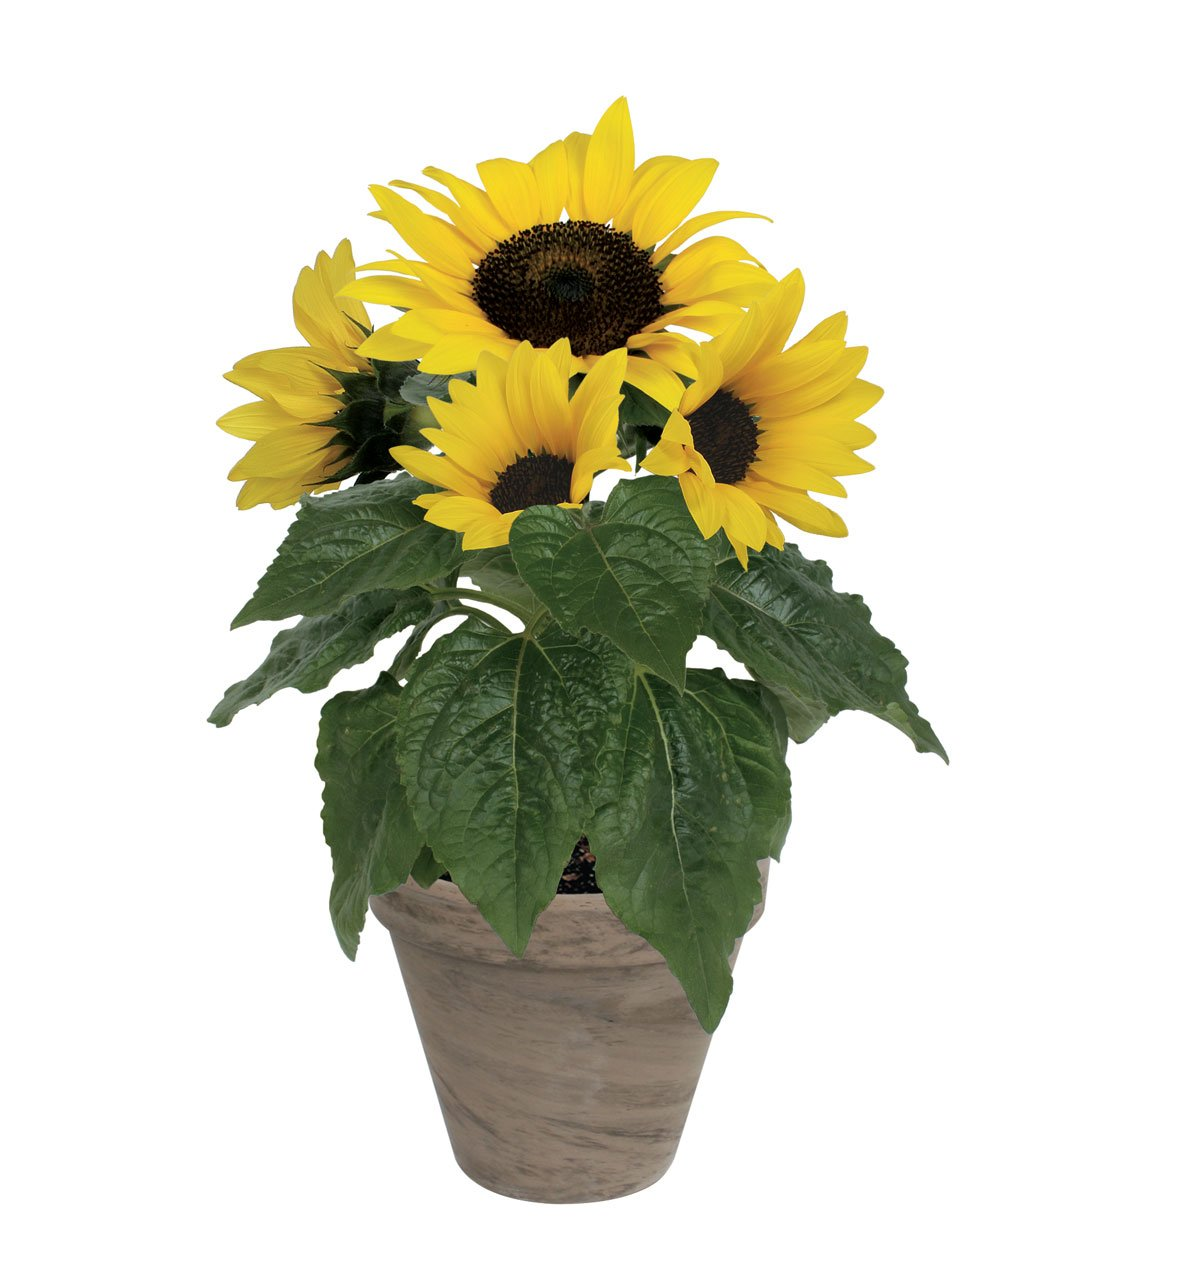 Quality Sunflower Grow Kit | Grow Your Own Unique Dwarf Sunflower from Seed in Just A Few Weeks | Unique Basalt Pot, Non-GMO Mother's Day Gardening Kit with Easy Instructions | by TotalGreen Holland (Image #7)